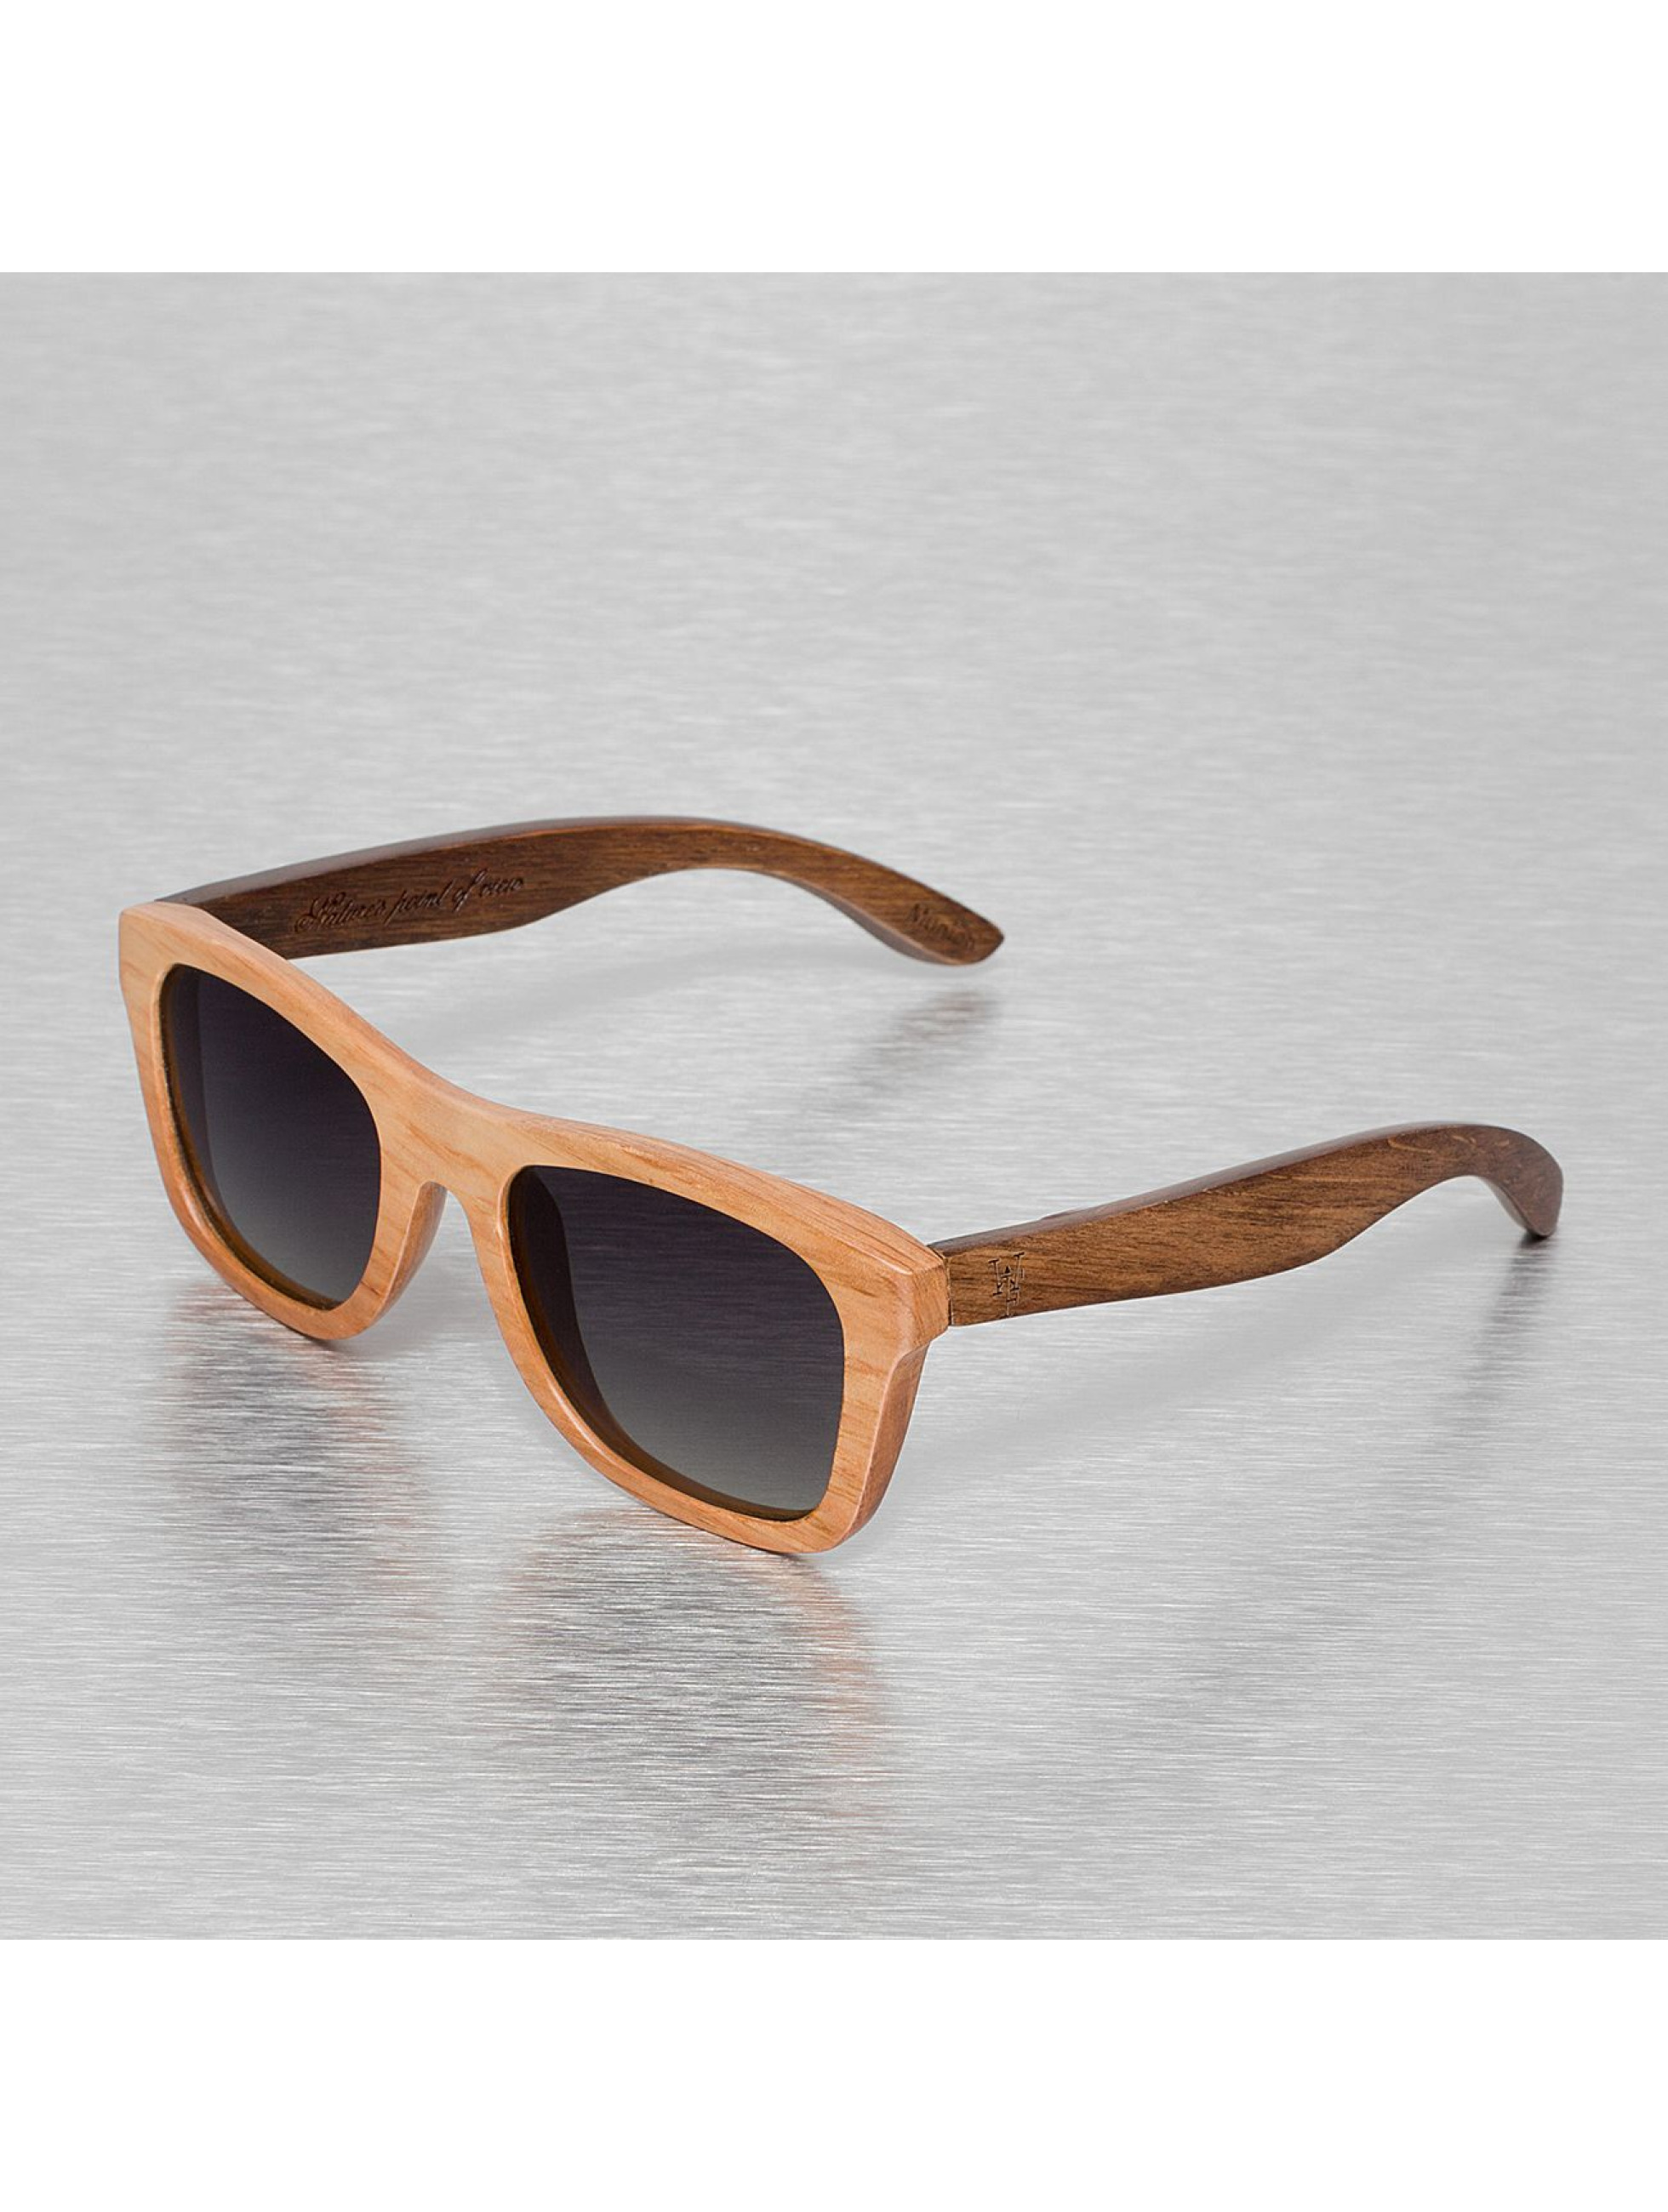 Wood Fellas Eyewear Männer,Frauen Sonnenbrille Wood Fellas Jalo in braun